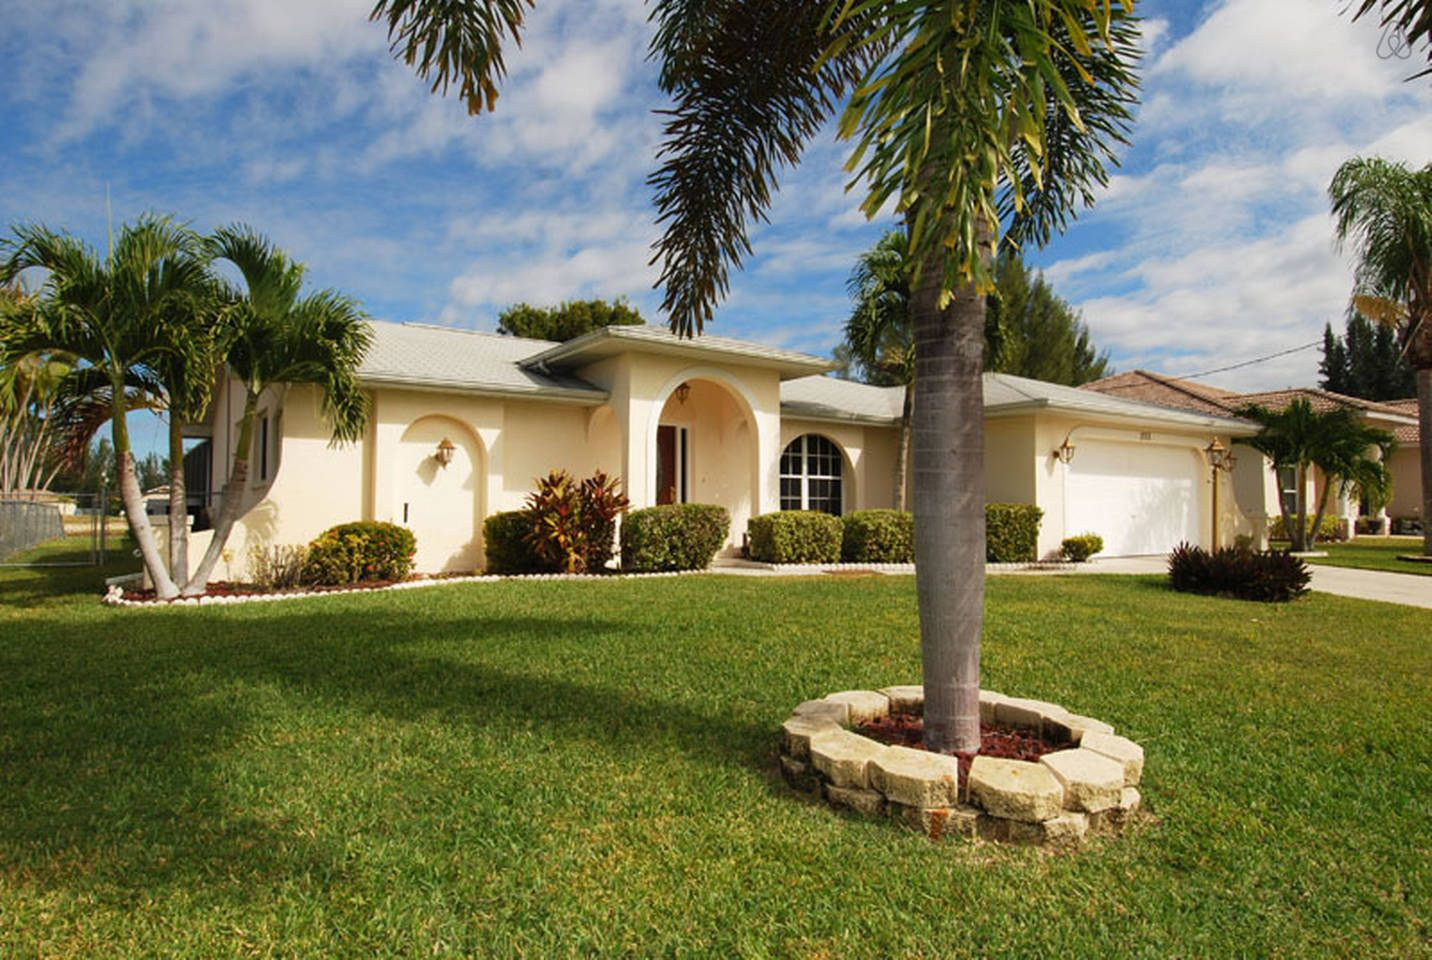 Villa Tequila Sunrise Great Home In Cape Coral Condos In Florida Florida Vacation Rentals Vacation Home